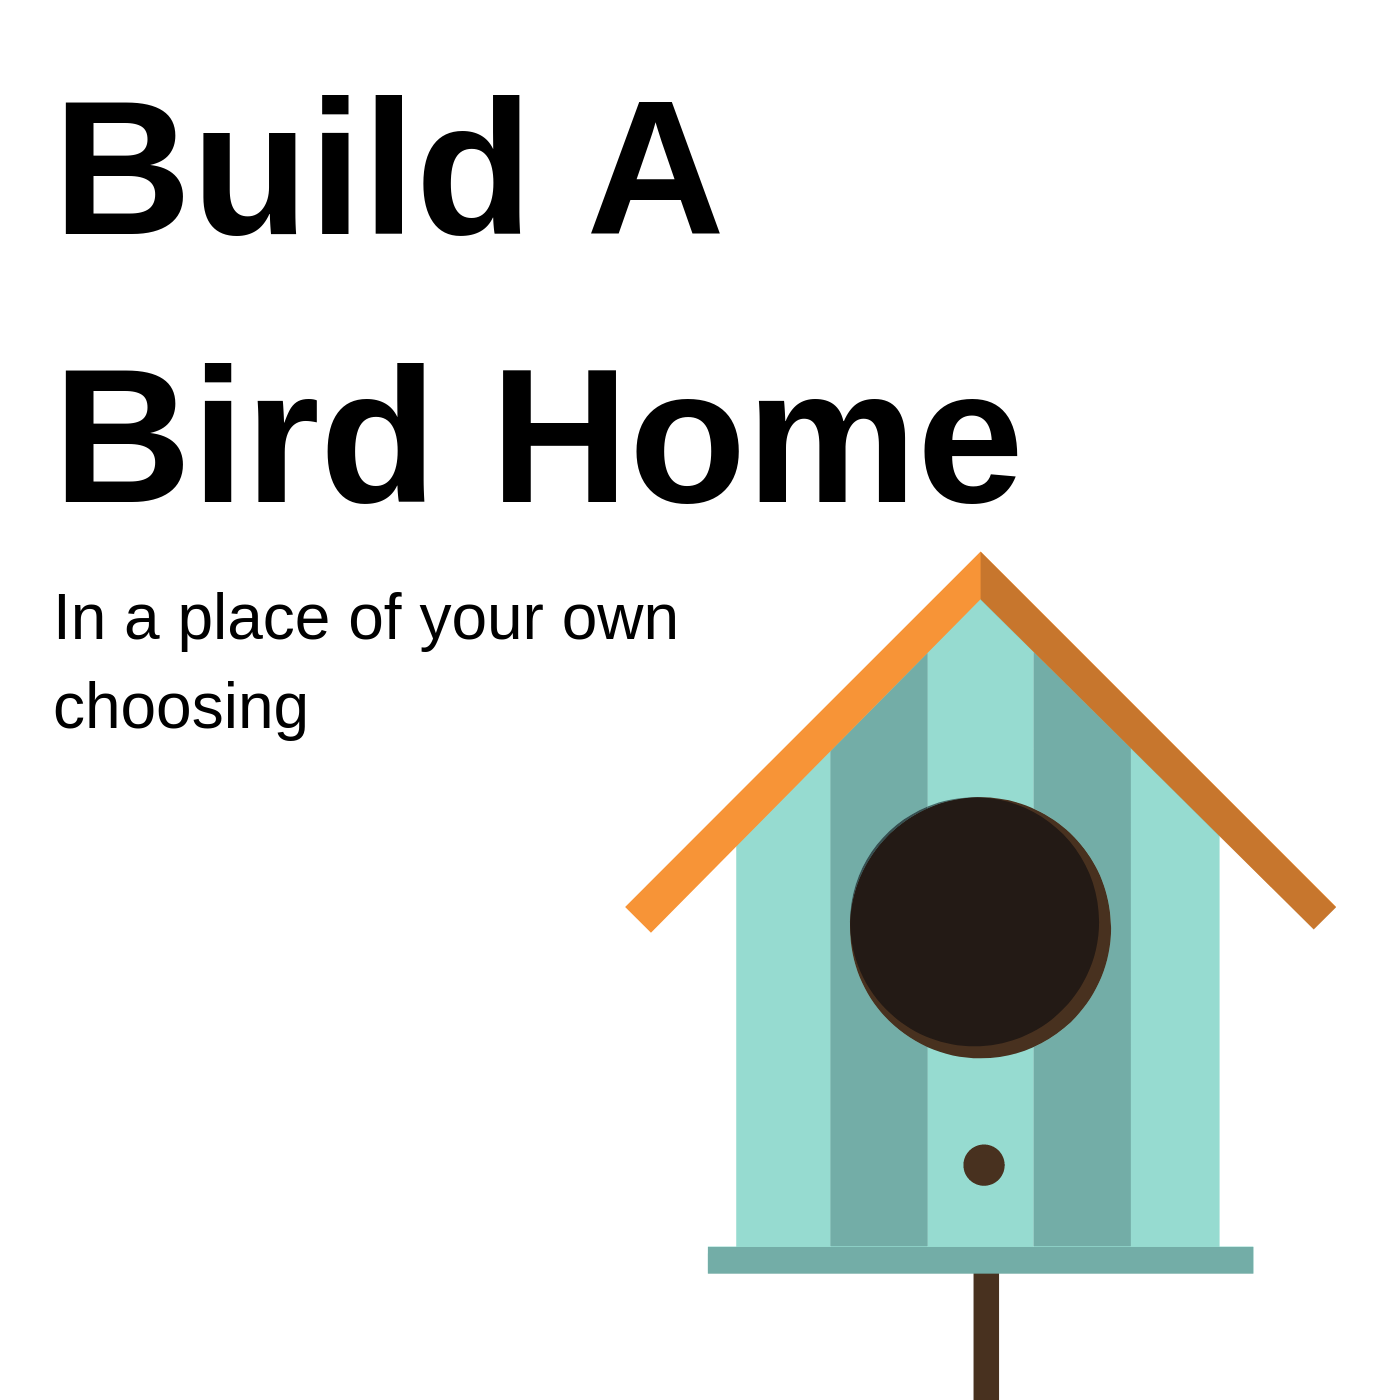 738 - Build a Bird Home